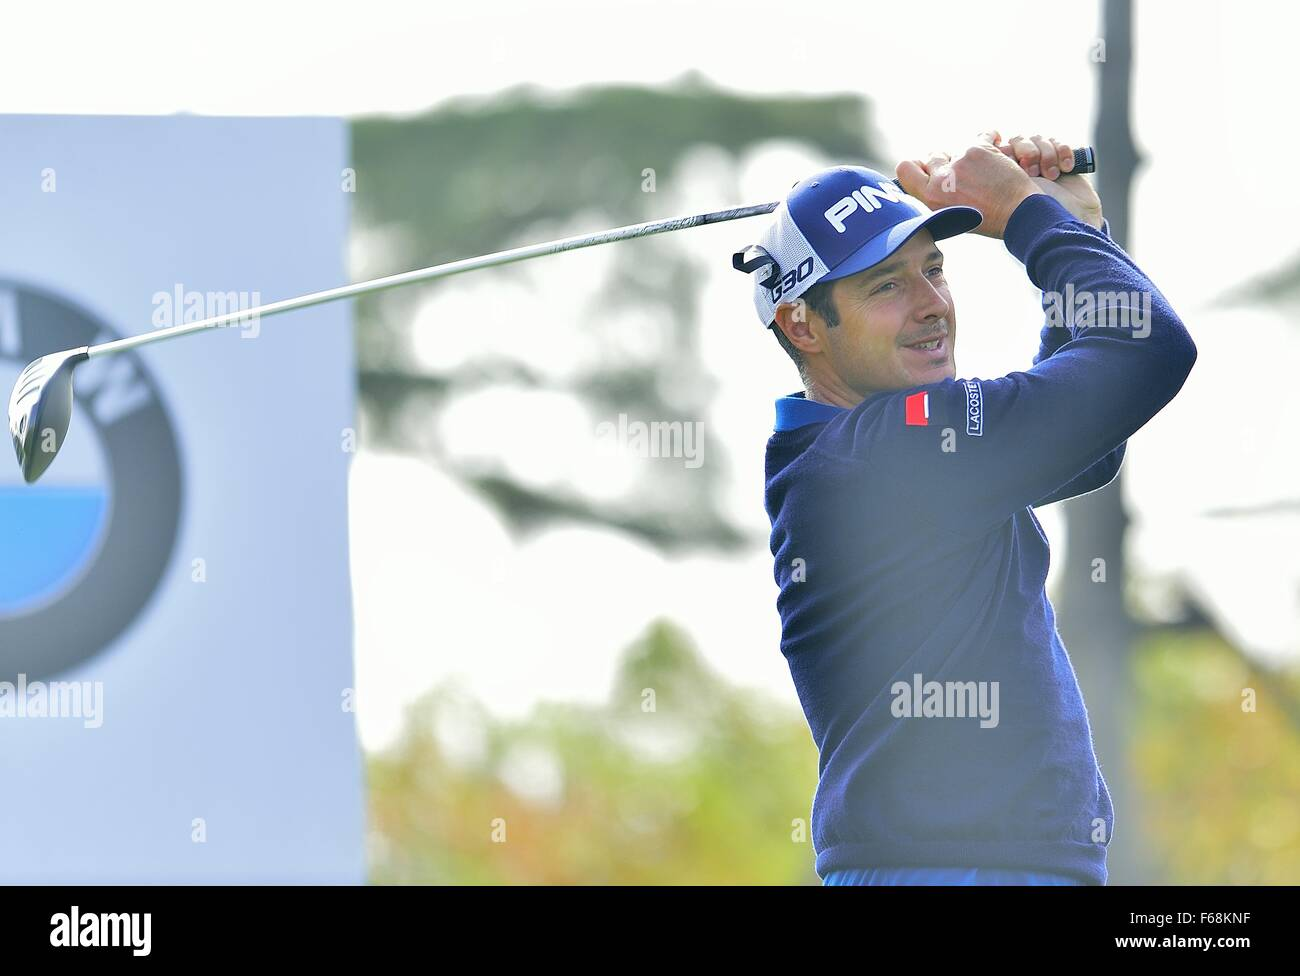 Shanghai, China. 14th November, 2015. JULIEN QUESNE of France during the round 3 of BMW Masters at Lake Malaren - Stock Image